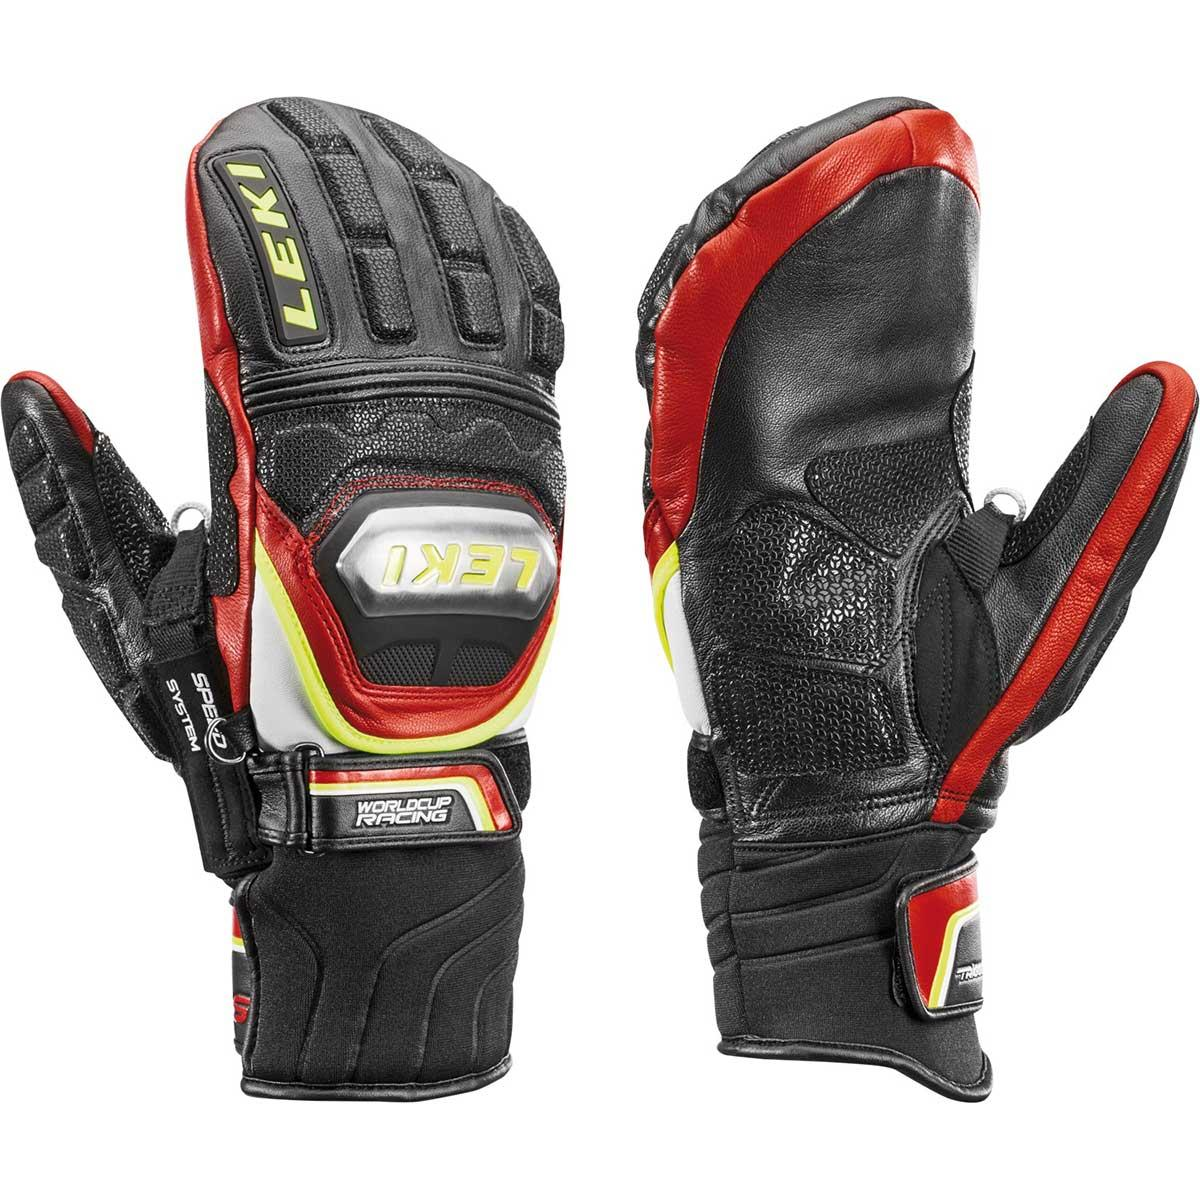 Leki Worldcup Racing Ti S Mitt in black and red and yellow